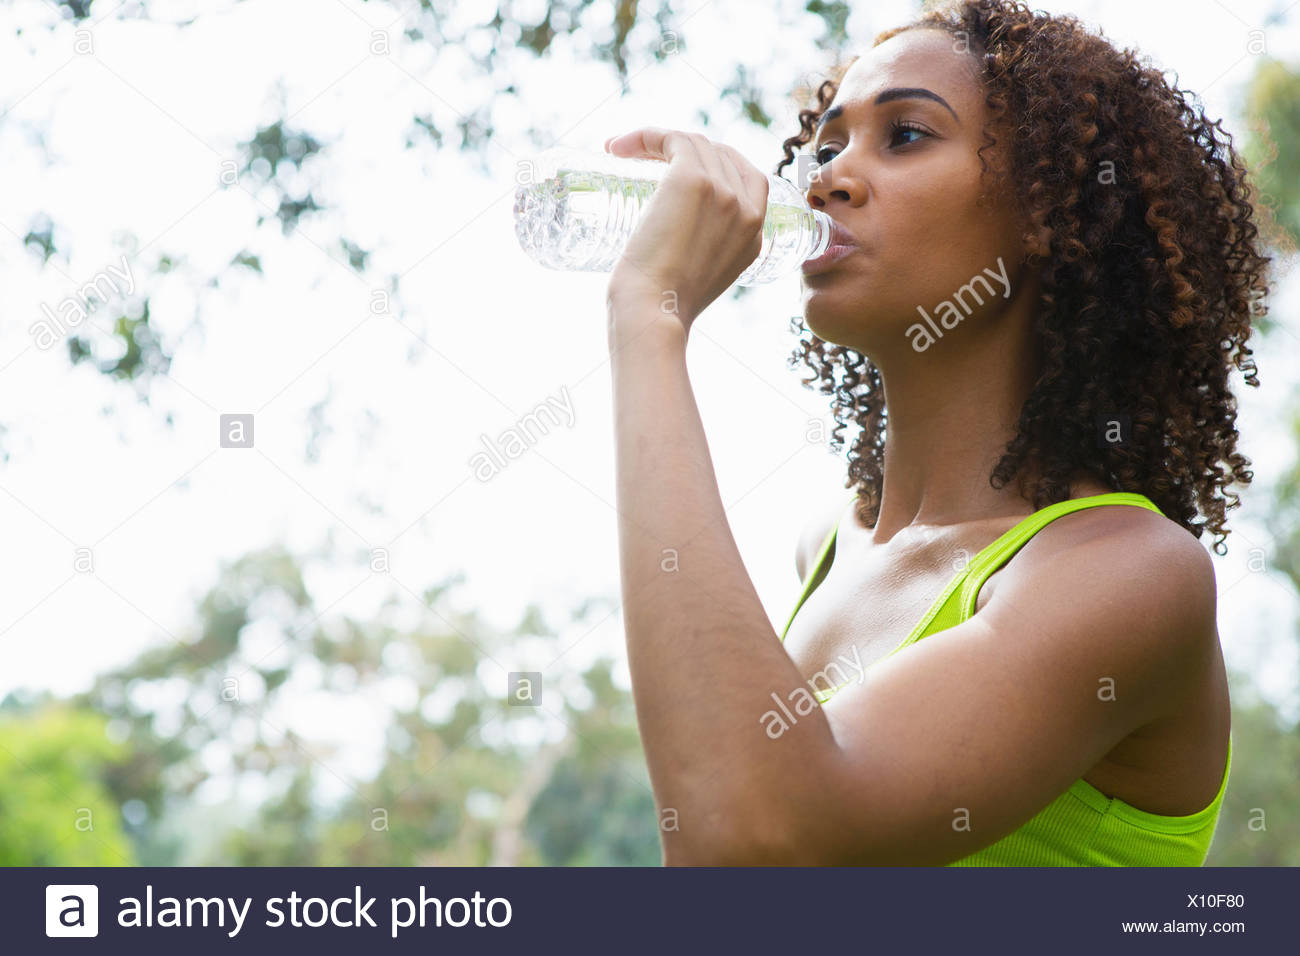 Mid adult woman drinking from water bottle Stock Photo